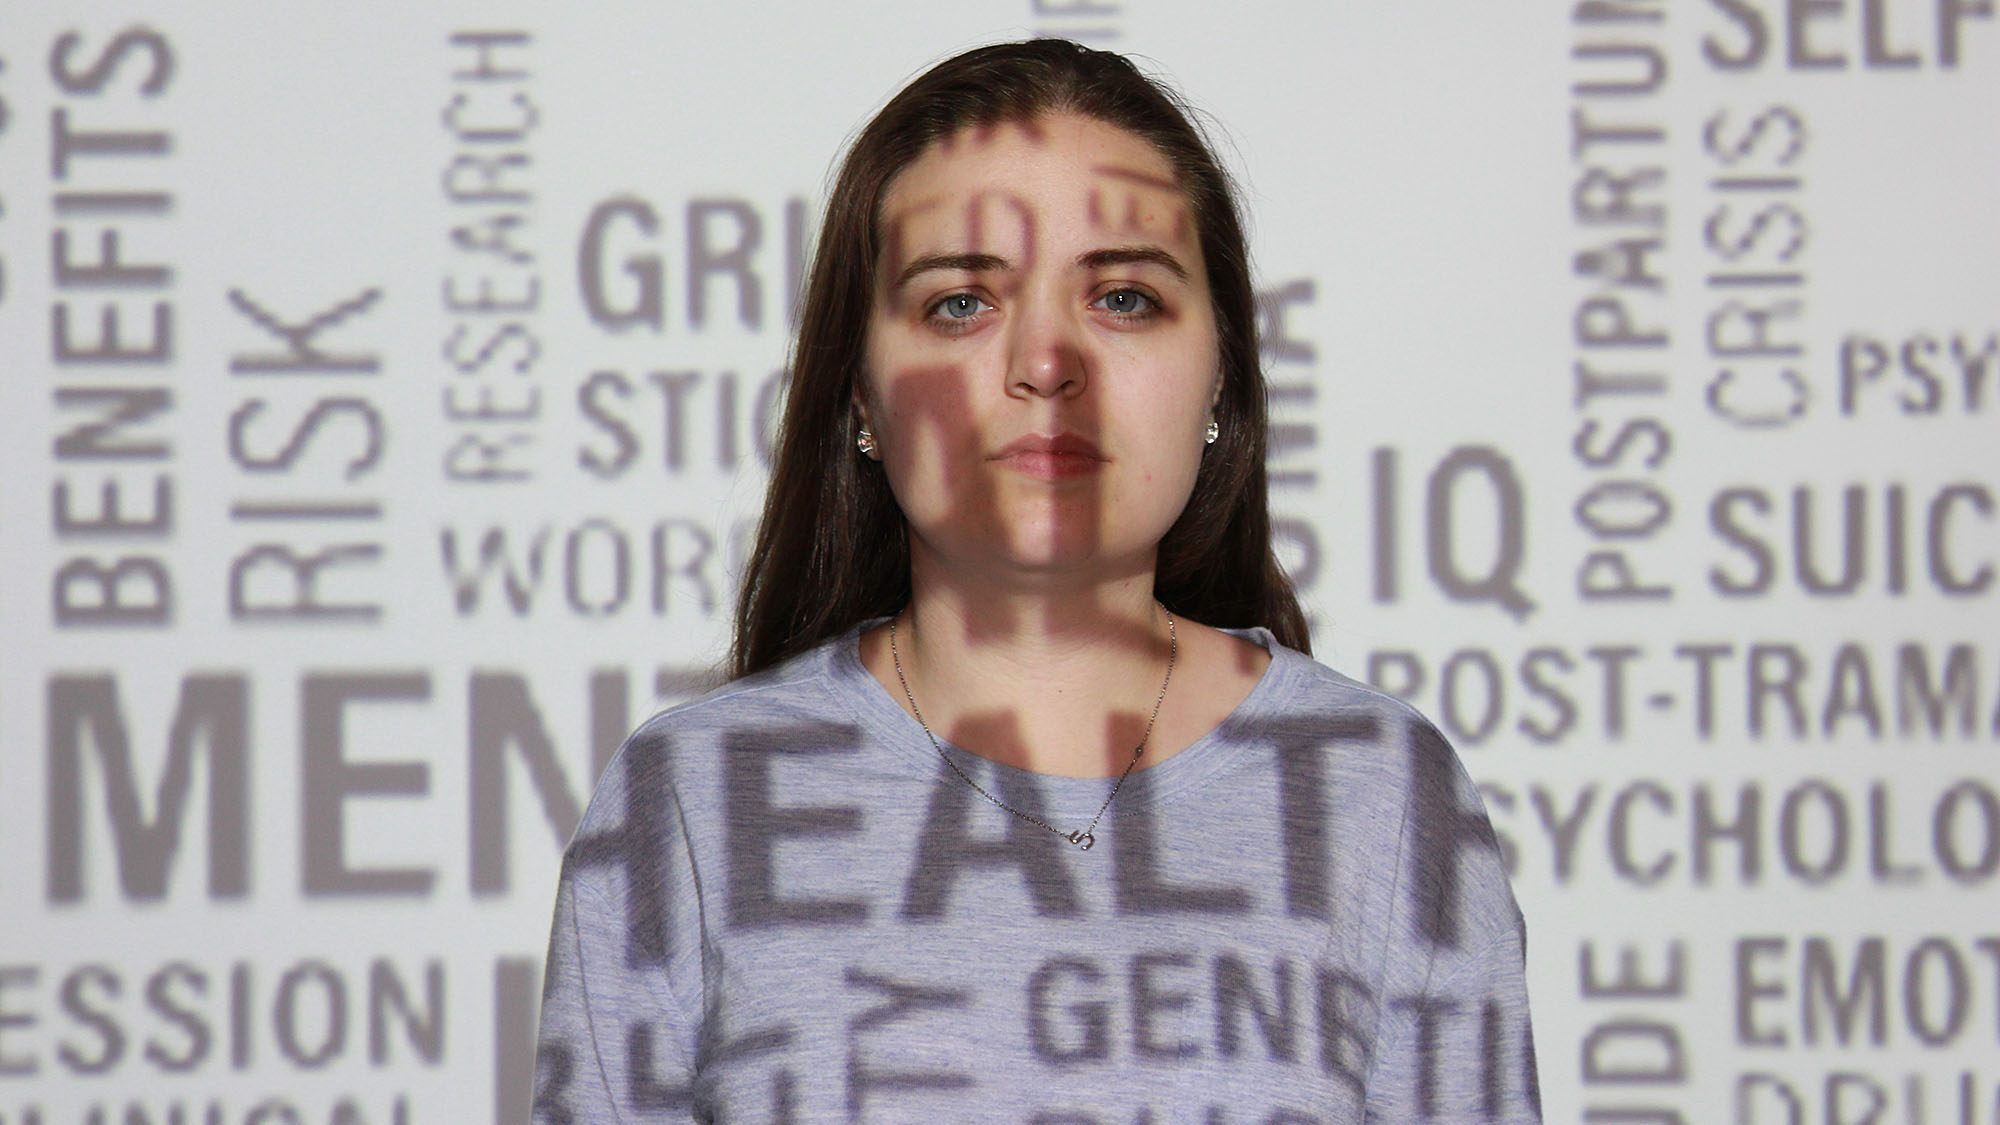 A model is projected with words related to mental health.